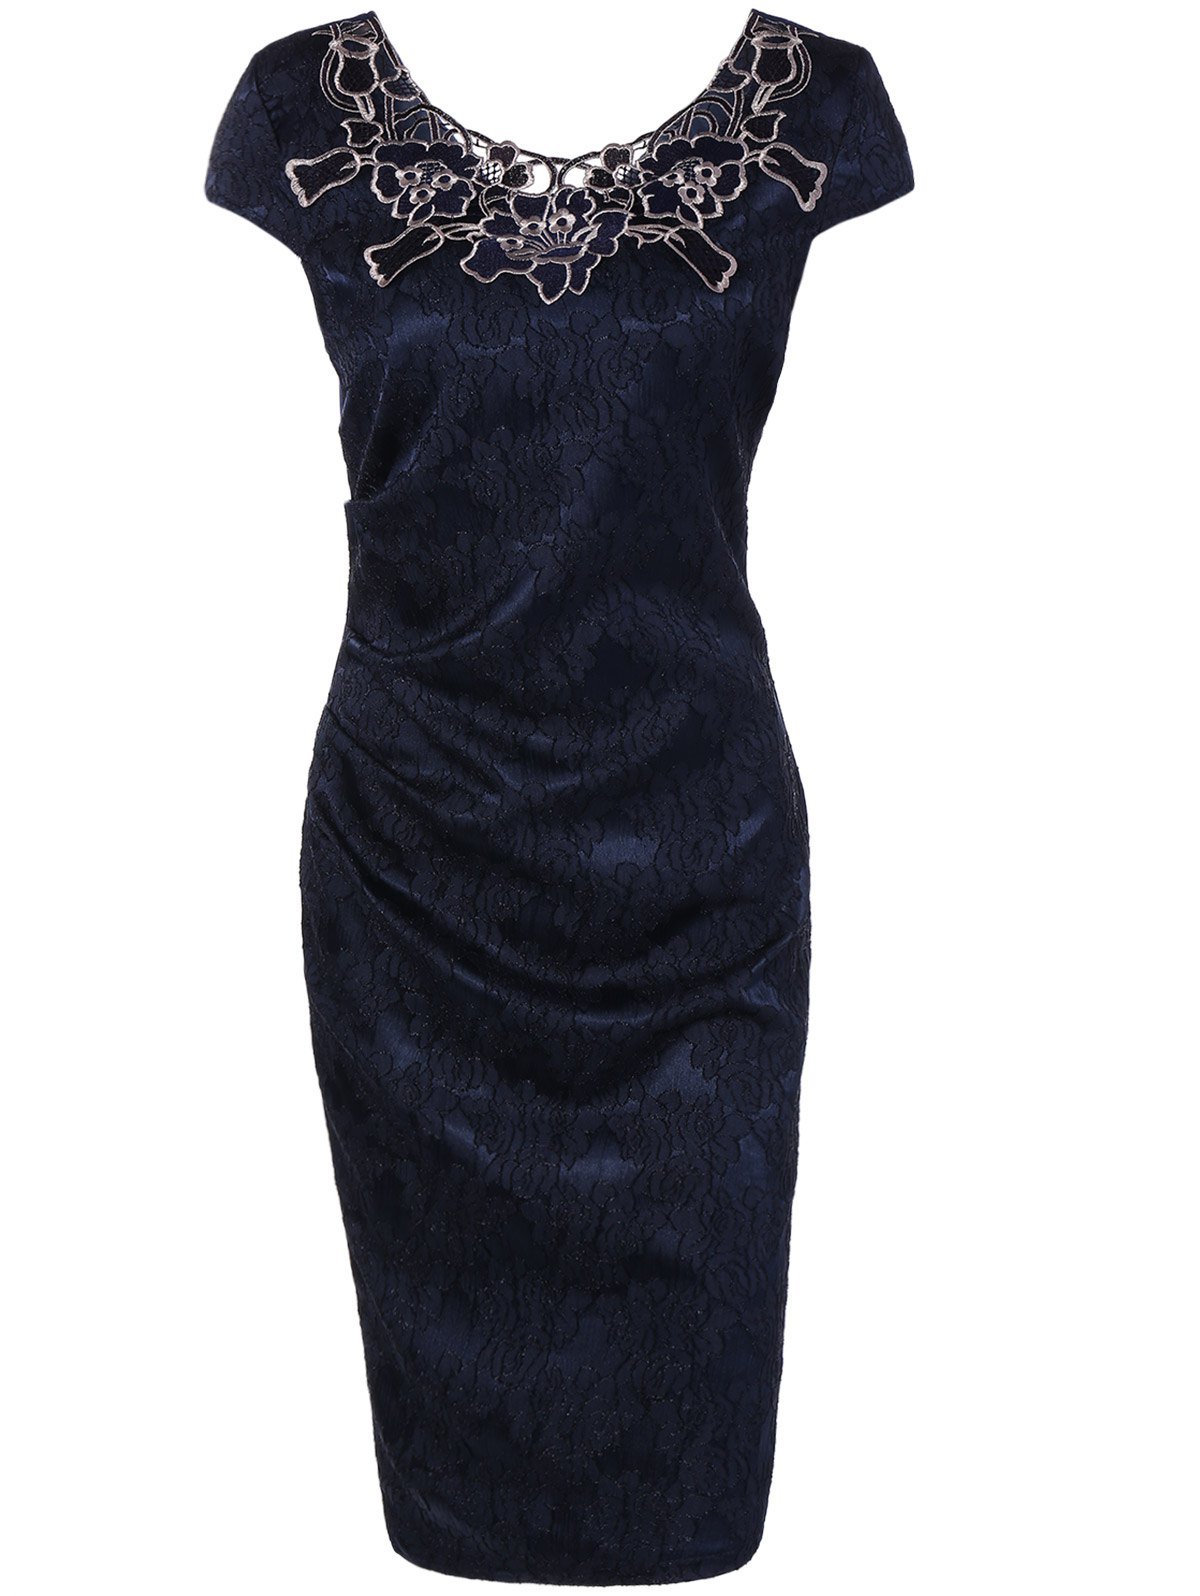 Flower Embroidery Lacework Insert Bodycon Dress skinny lacework slit bodycon dress